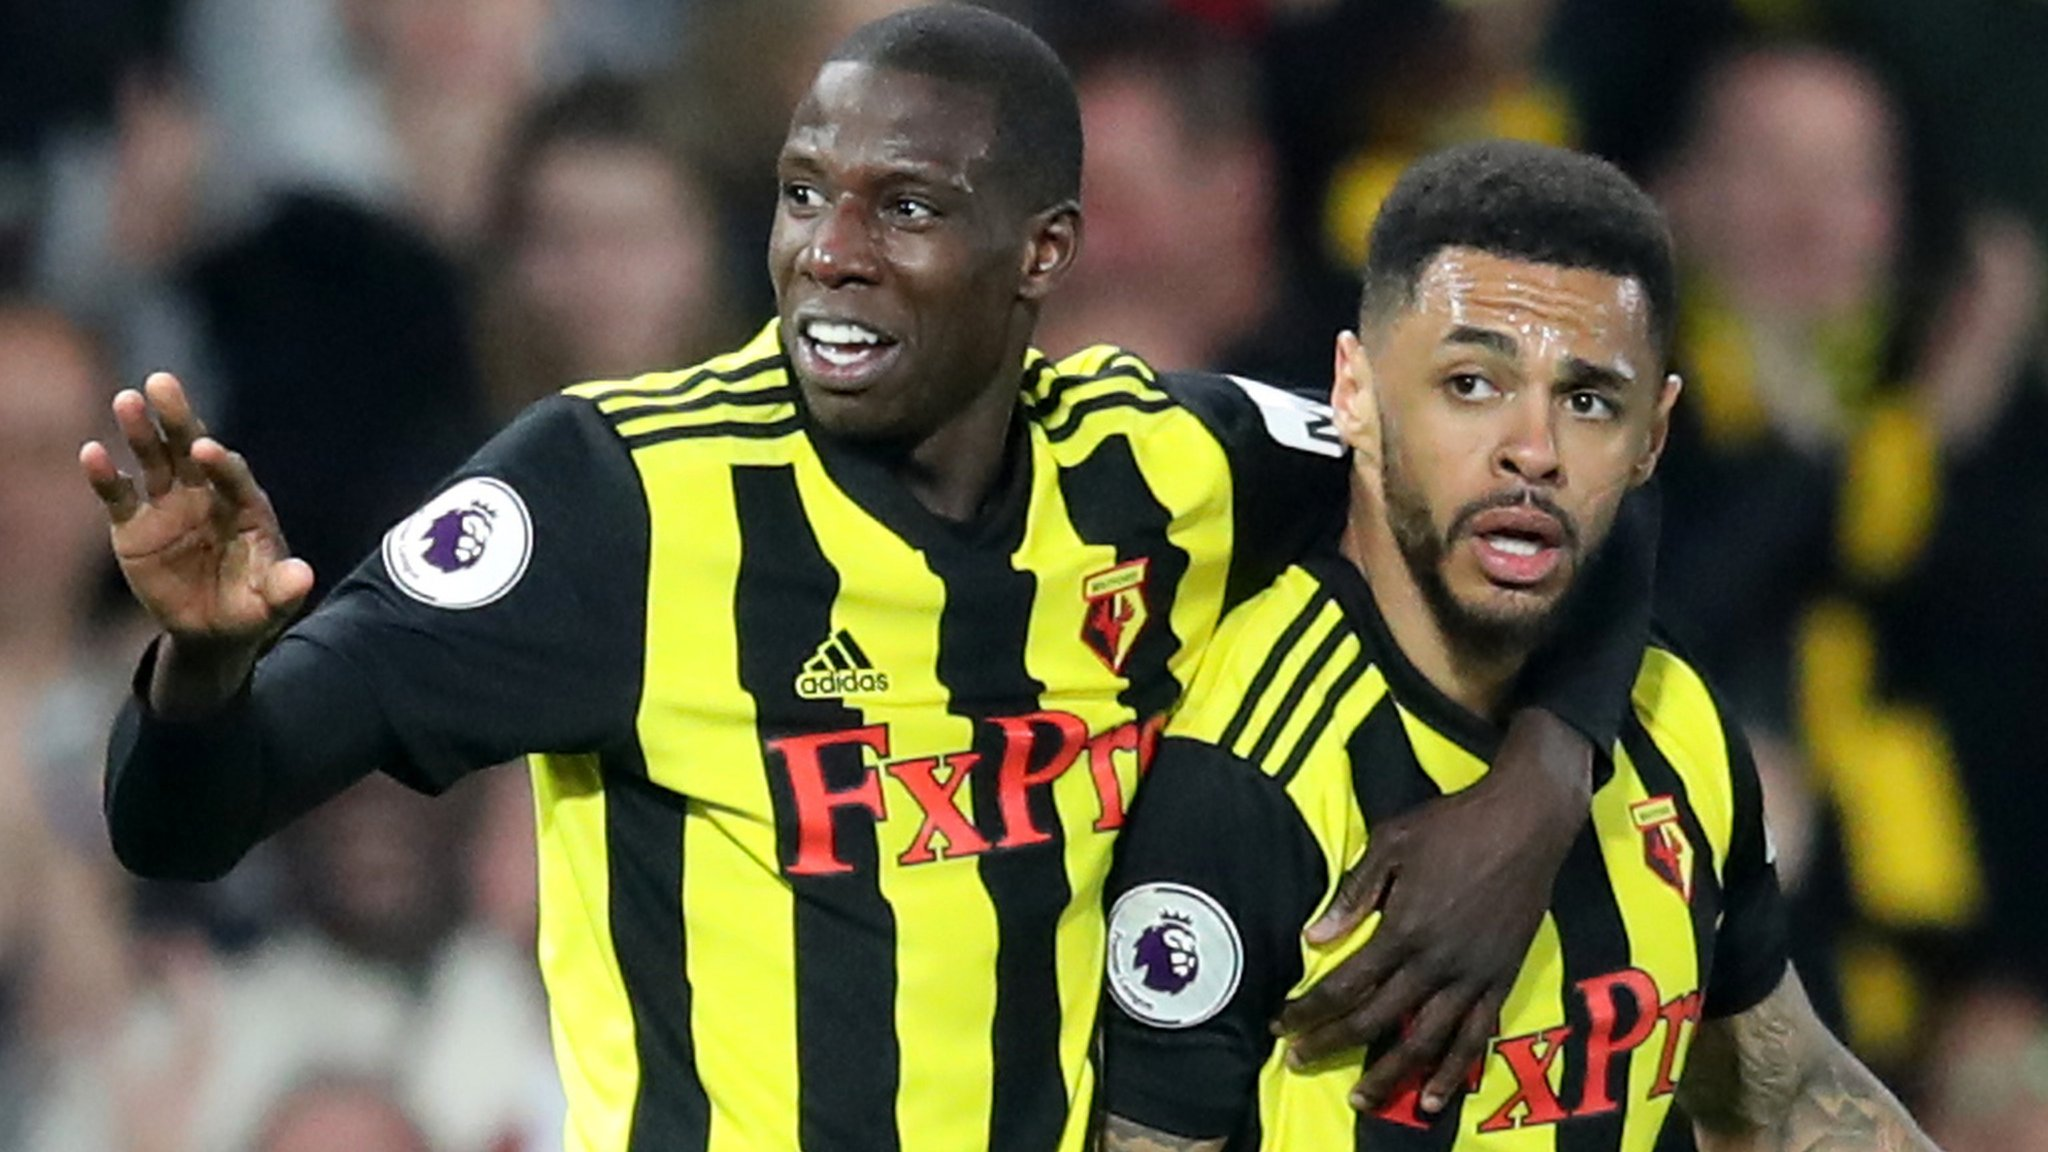 Watford snatch draw after Southampton's Long scores fastest Premier League goal